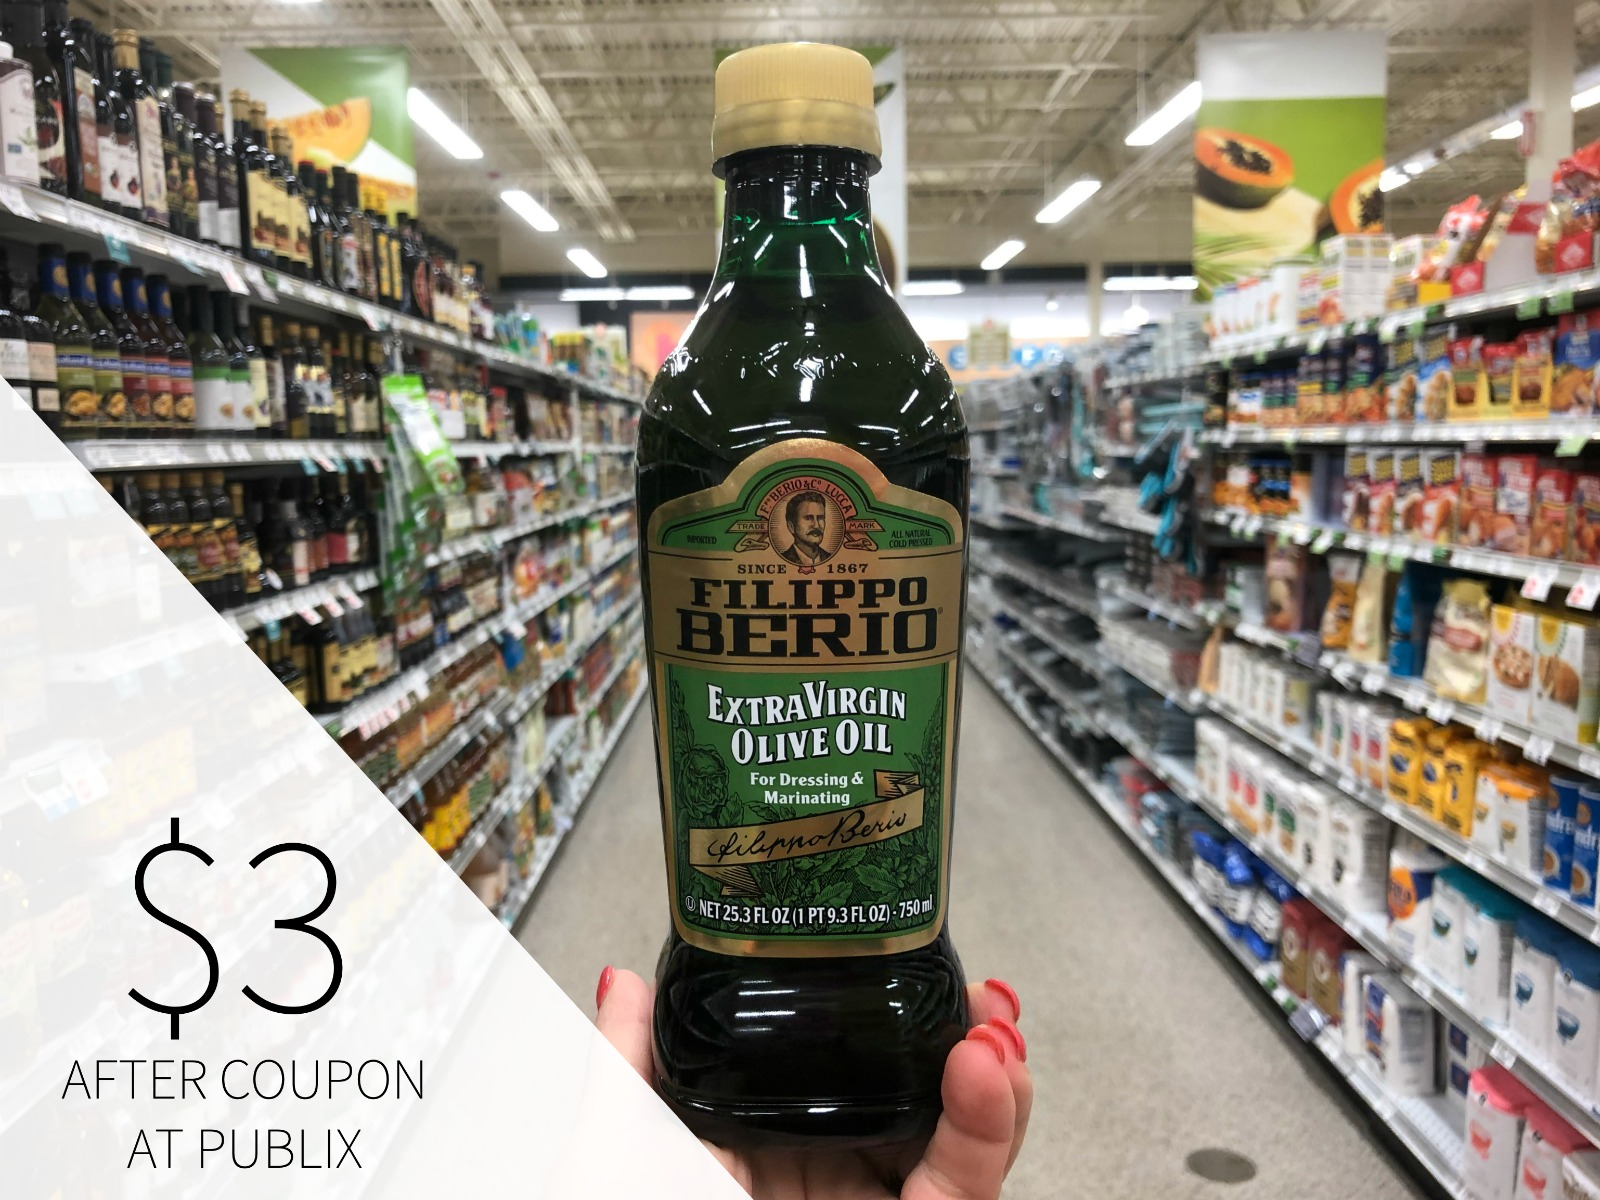 Filippo Berio Olive Oil Only $3 At Publix on I Heart Publix